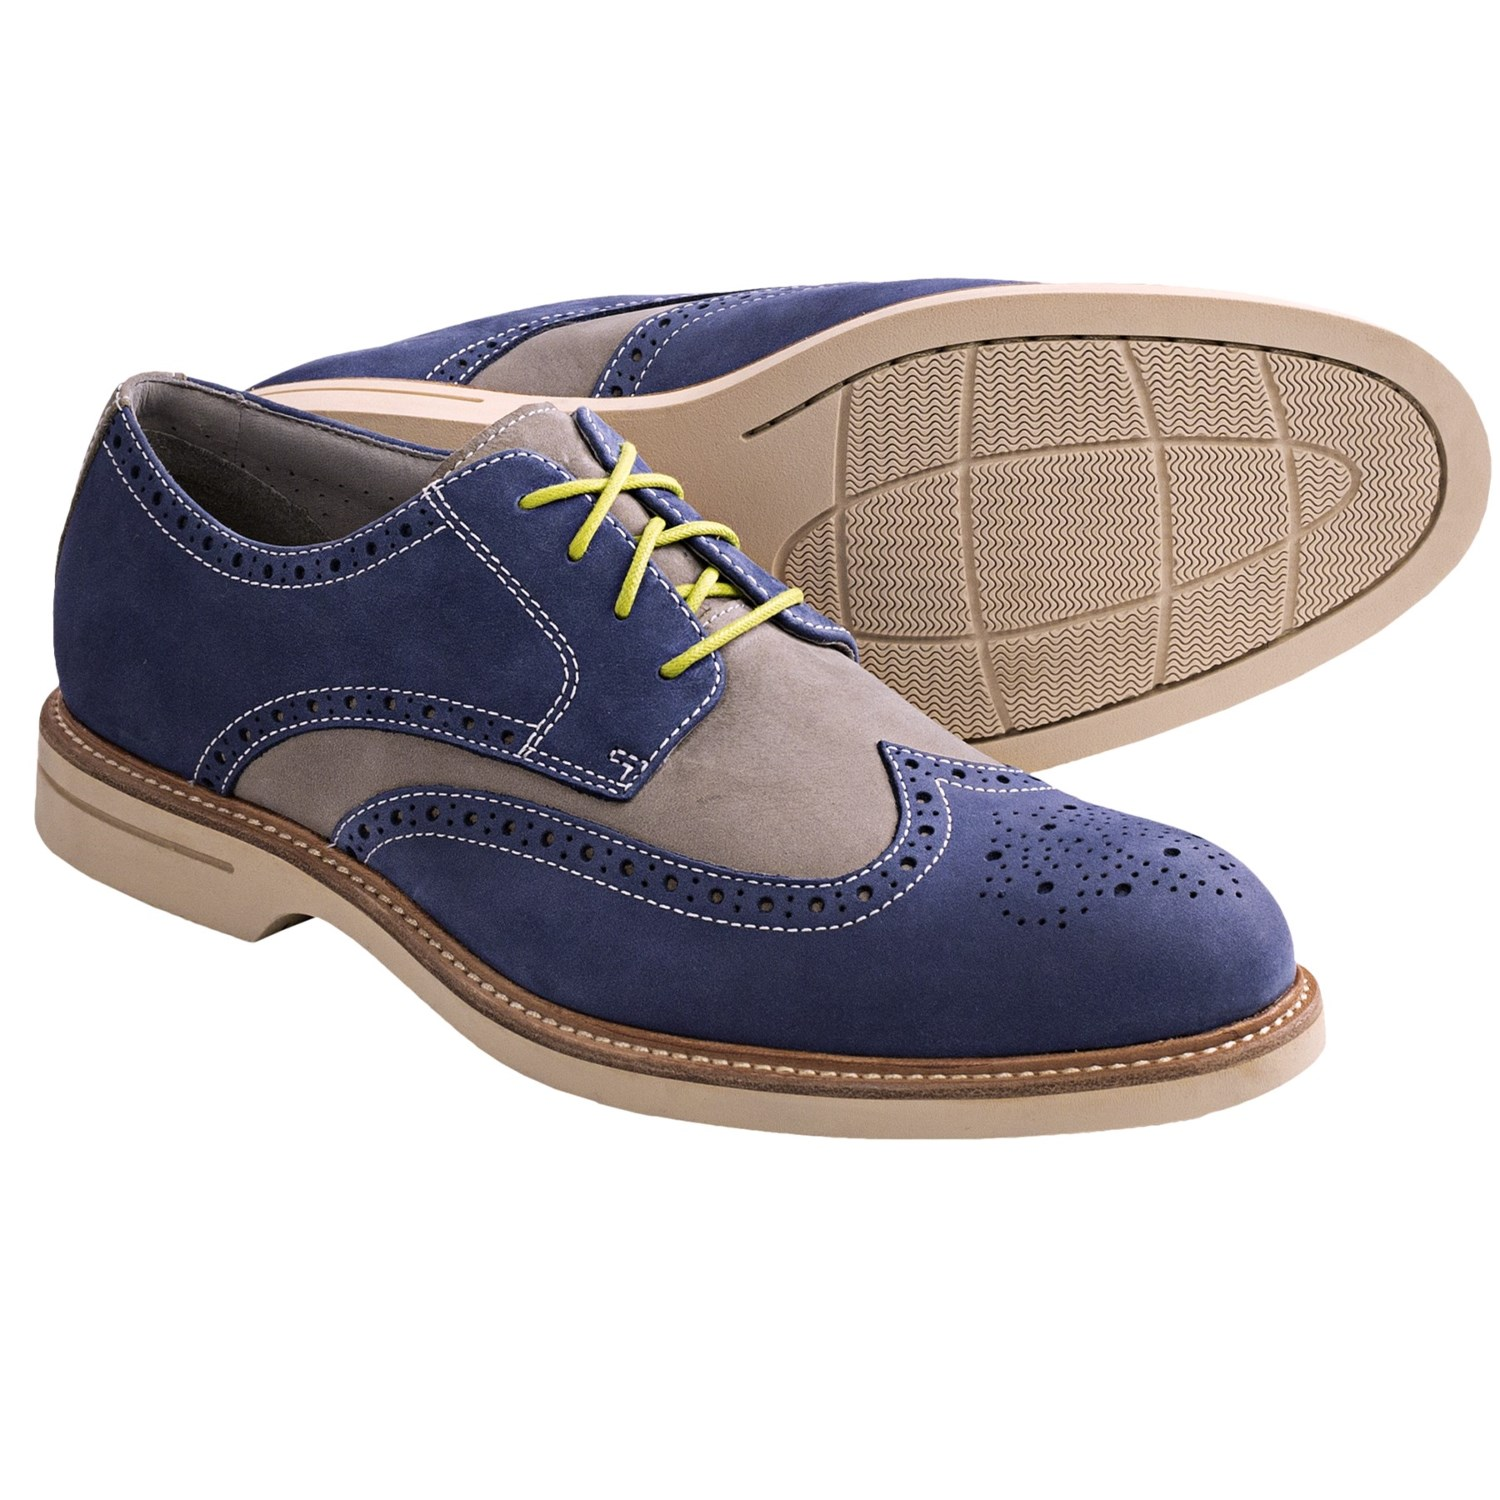 Sperry Top-Sider Gold Cup ASV Wingtip Oxford Shoes - Leather (For Men